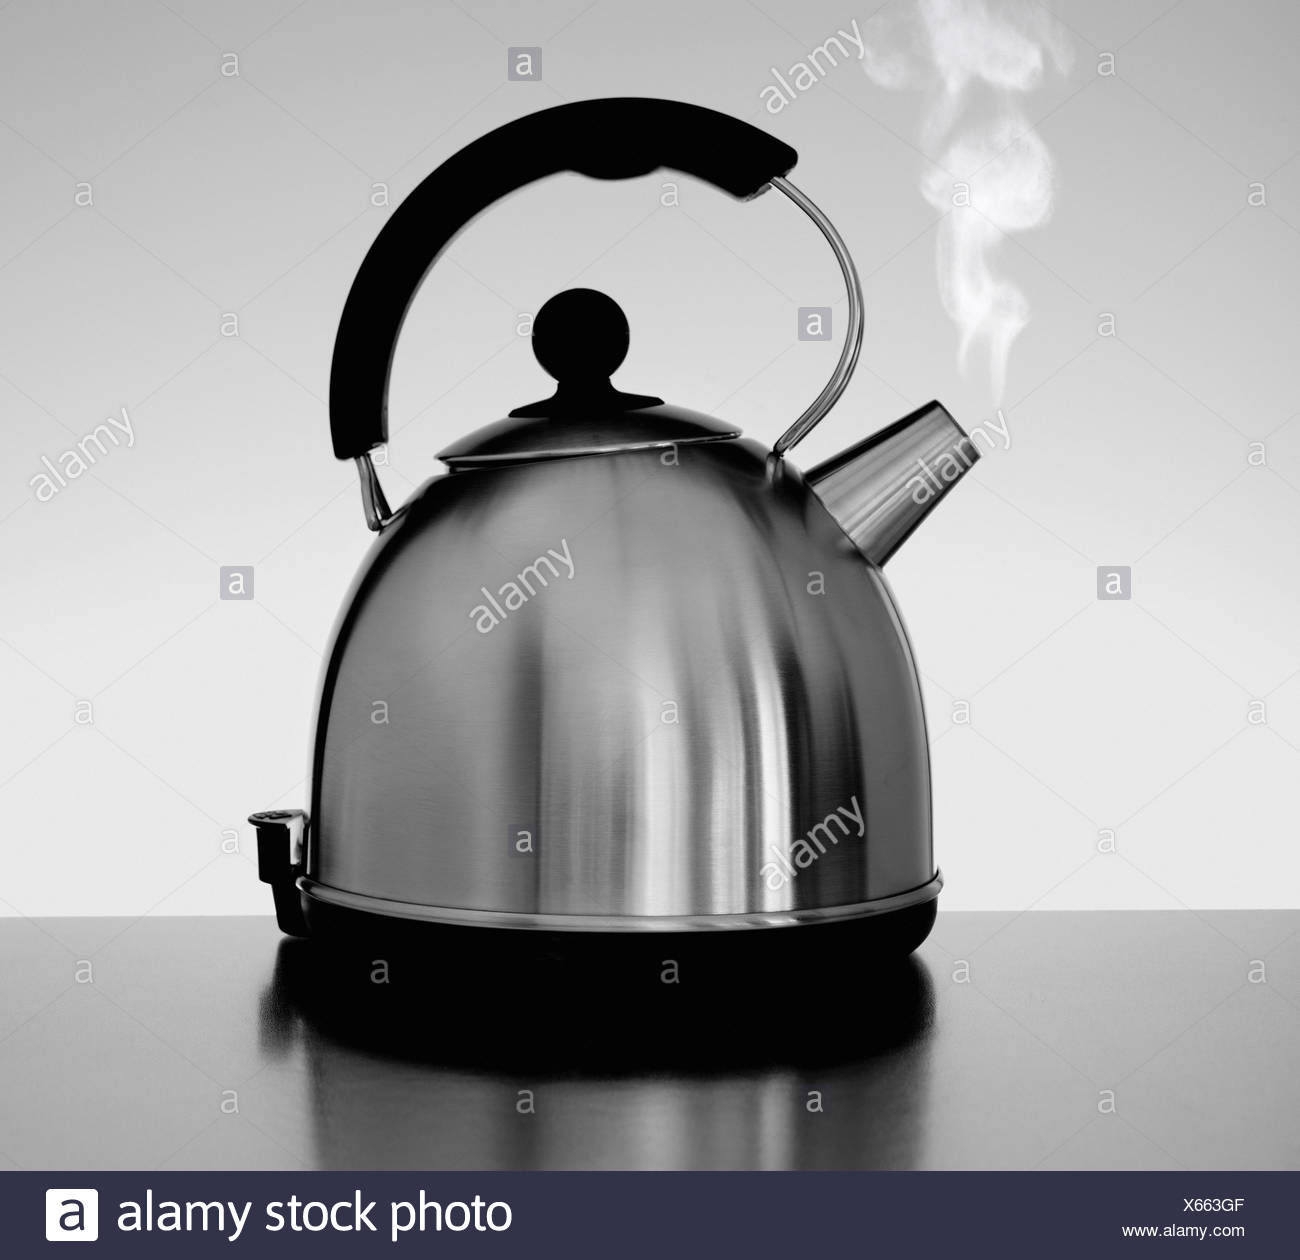 Tea kettle with steam indoors - Stock Image